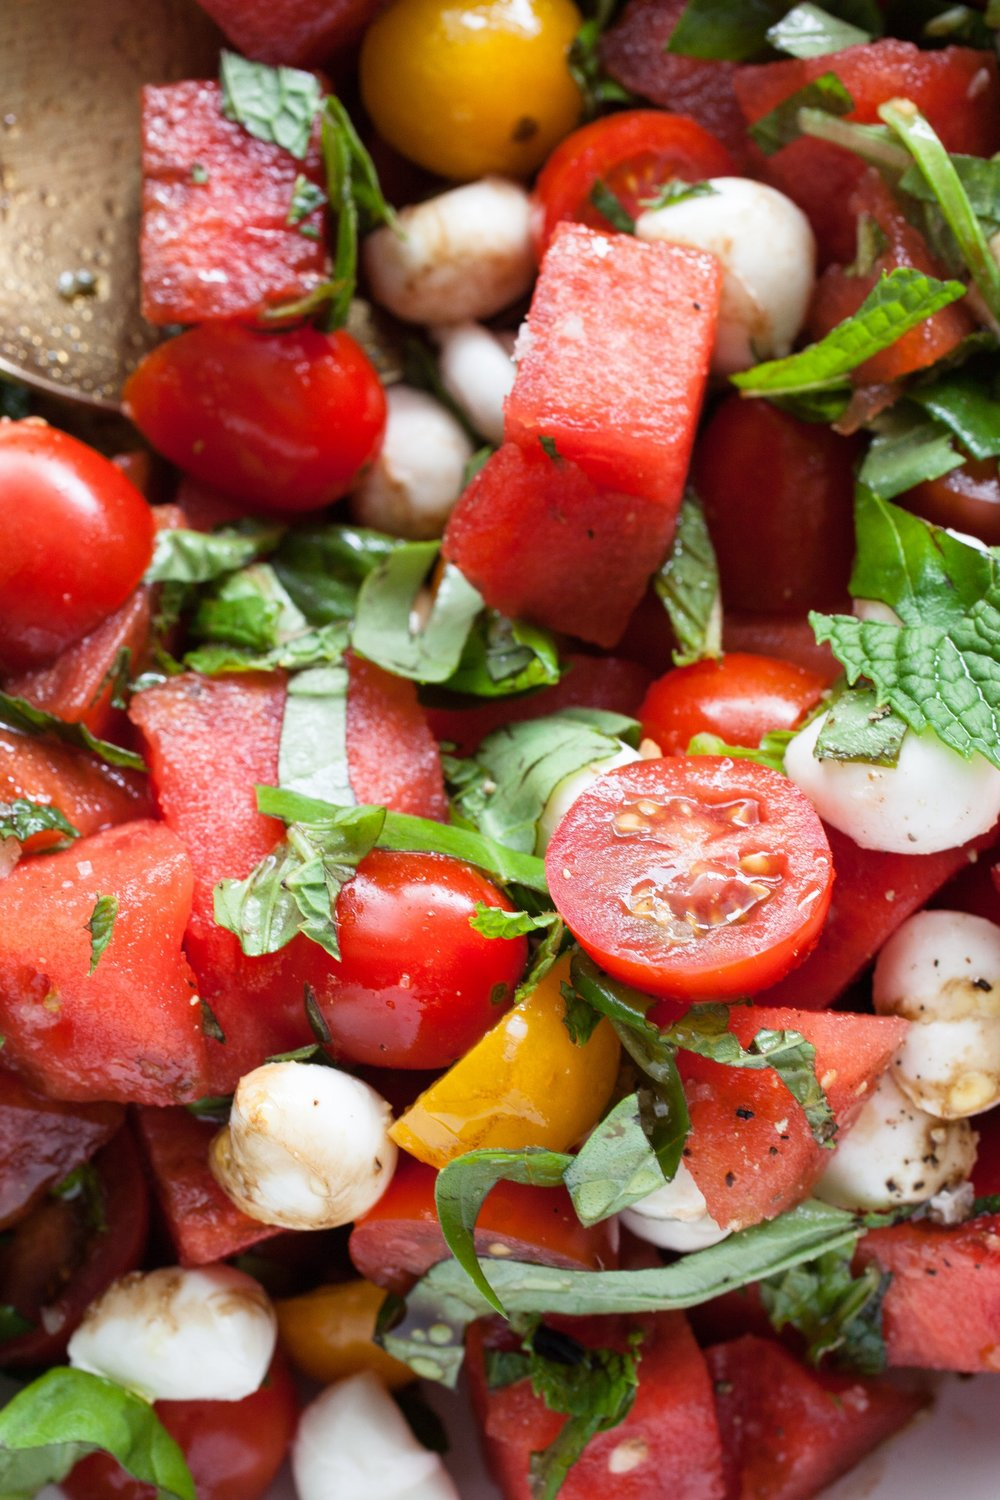 Tomato & Watermelon Caprese Salad - miracle gro